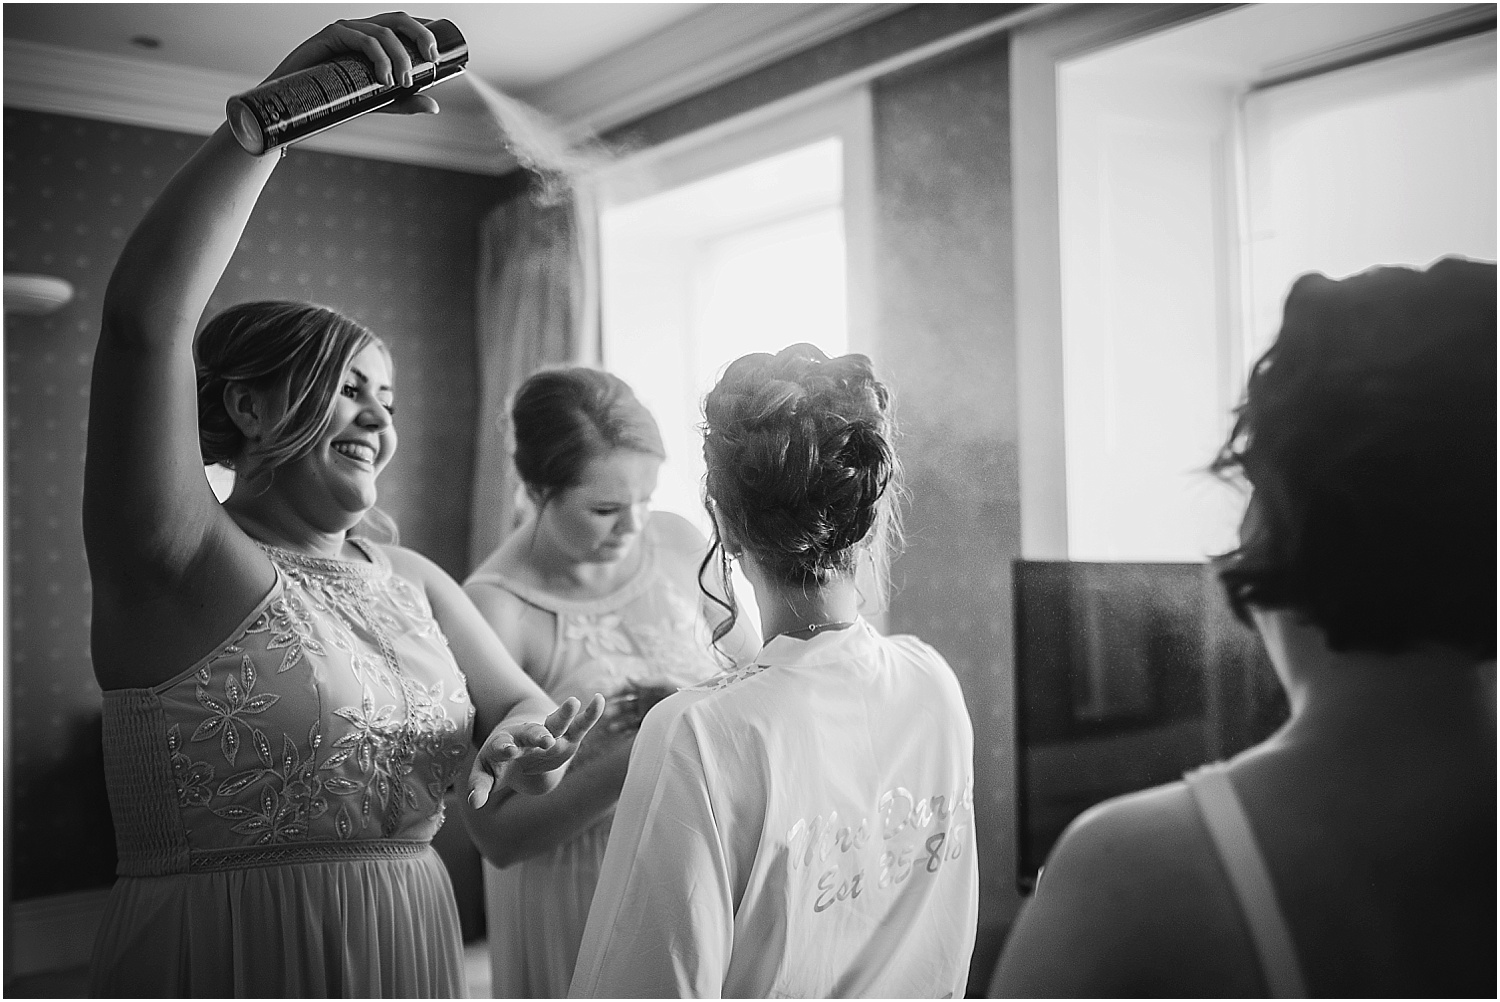 Wedding at Seaham Hall - wedding photography by www.2tonephotography.co.uk 009.jpg